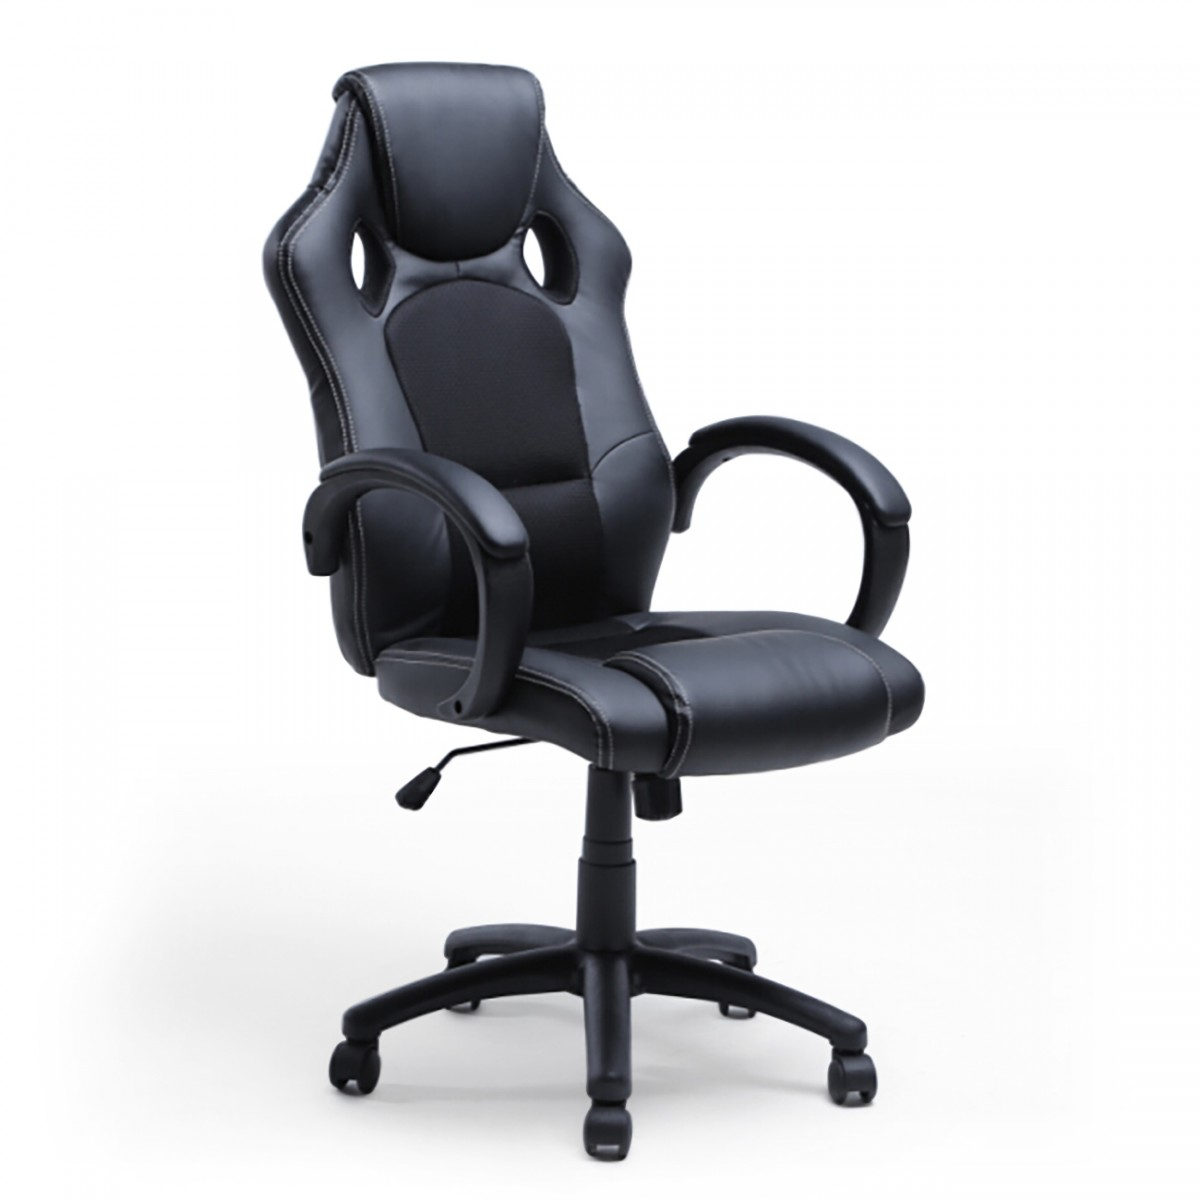 race car style bucket seat office chair high back executive swivel black leather. Black Bedroom Furniture Sets. Home Design Ideas